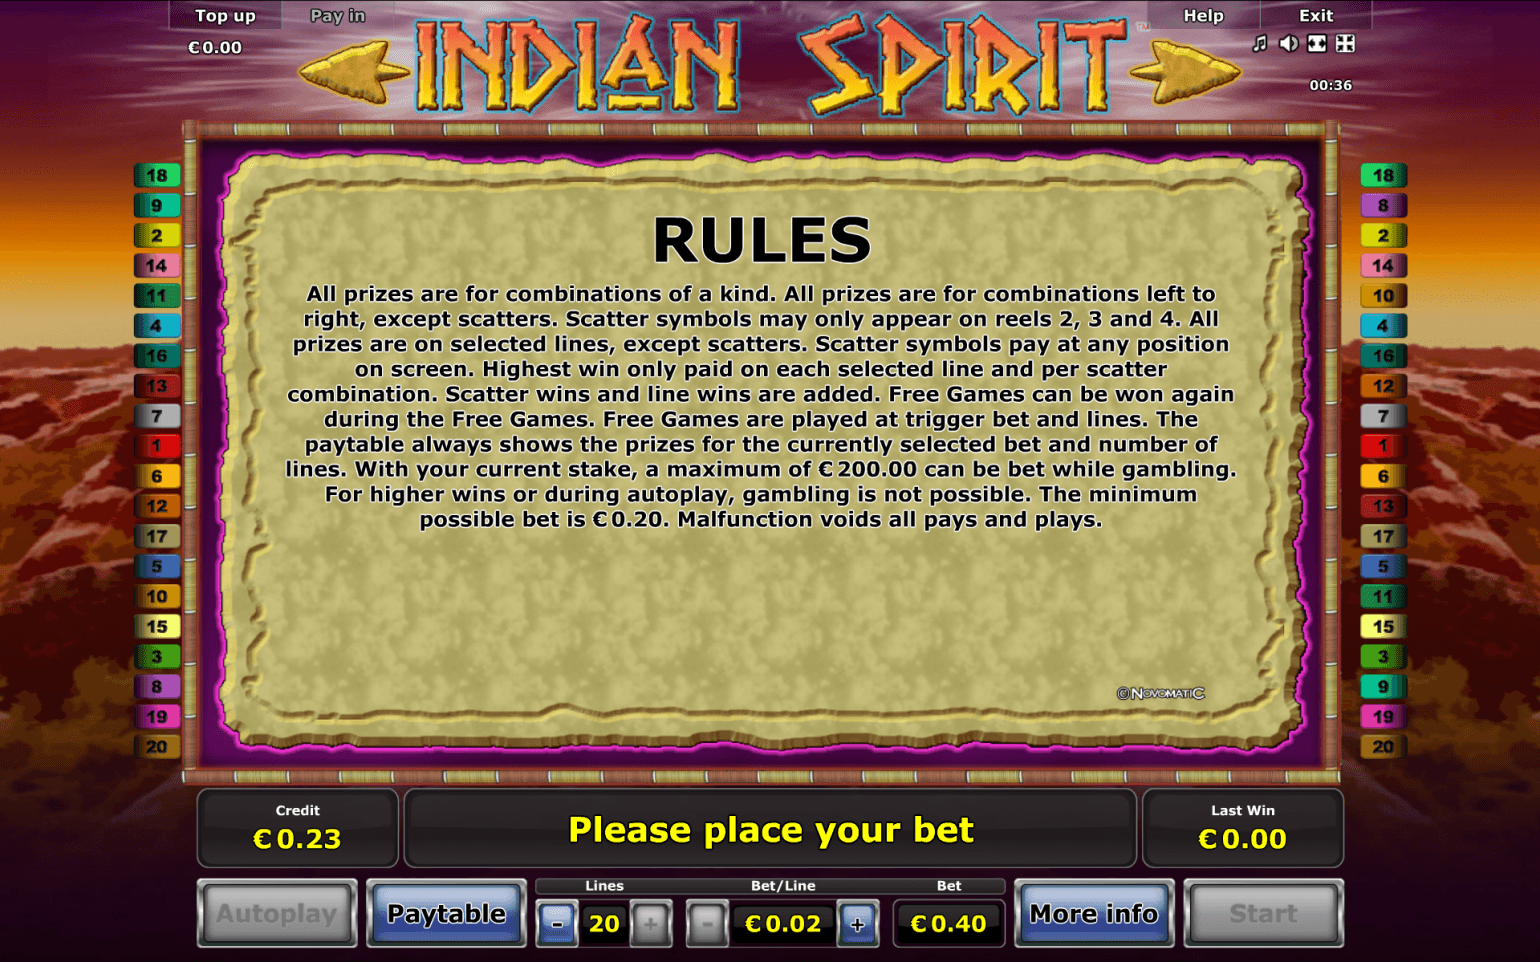 sunmaker online casino indian spirit